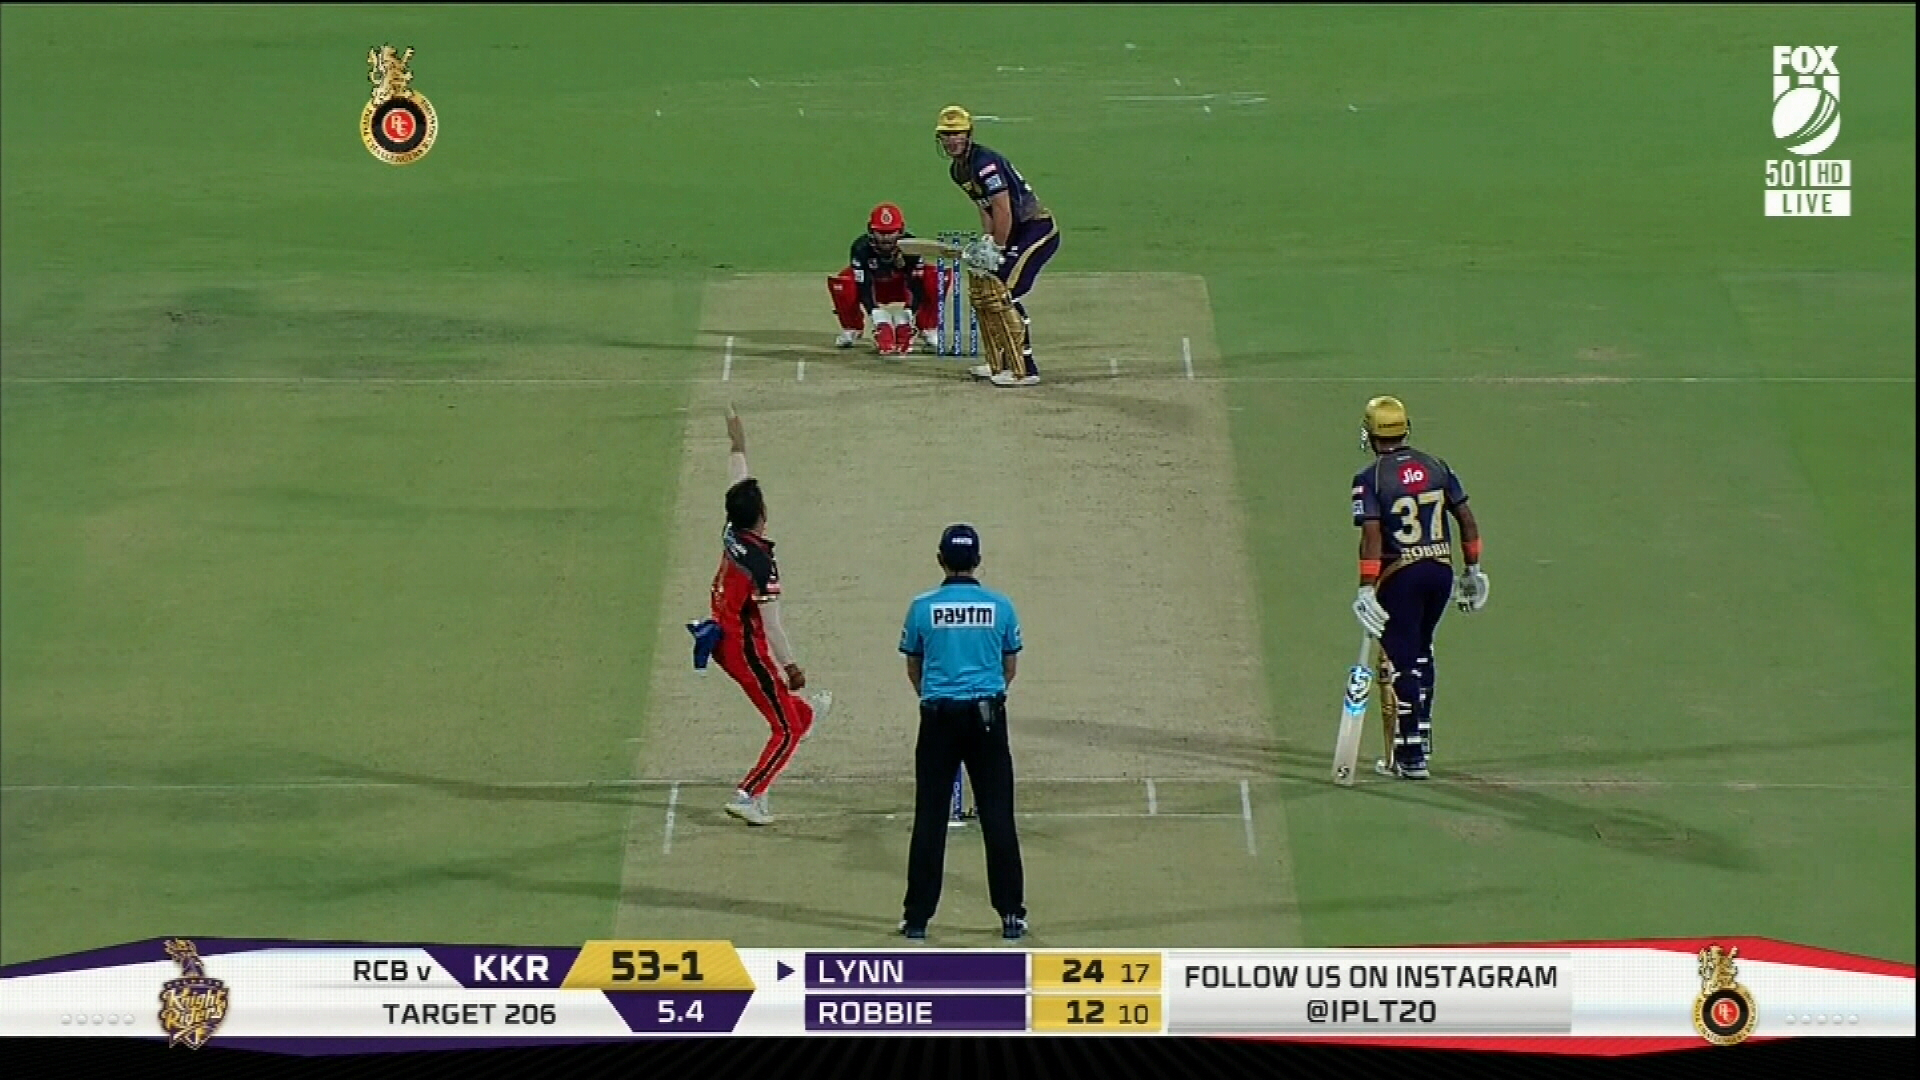 Chris Lynn hits six out of the stadium